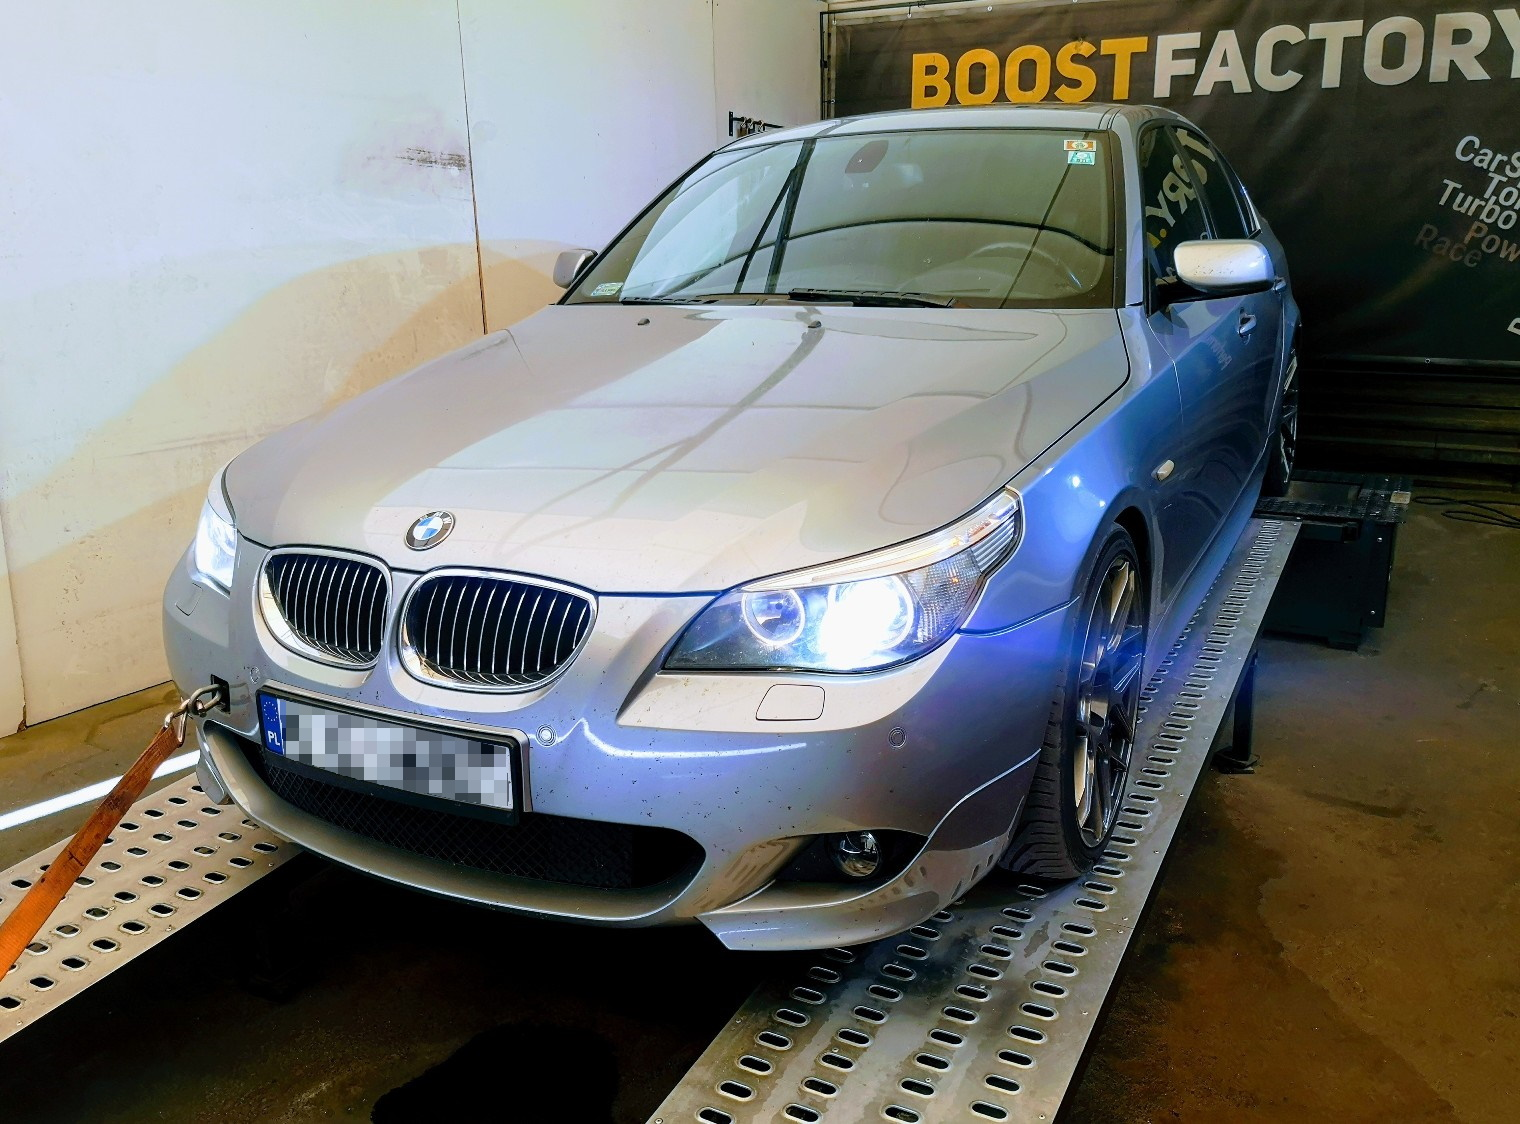 BMW E60 530D 231KM >> 305KM 672Nm